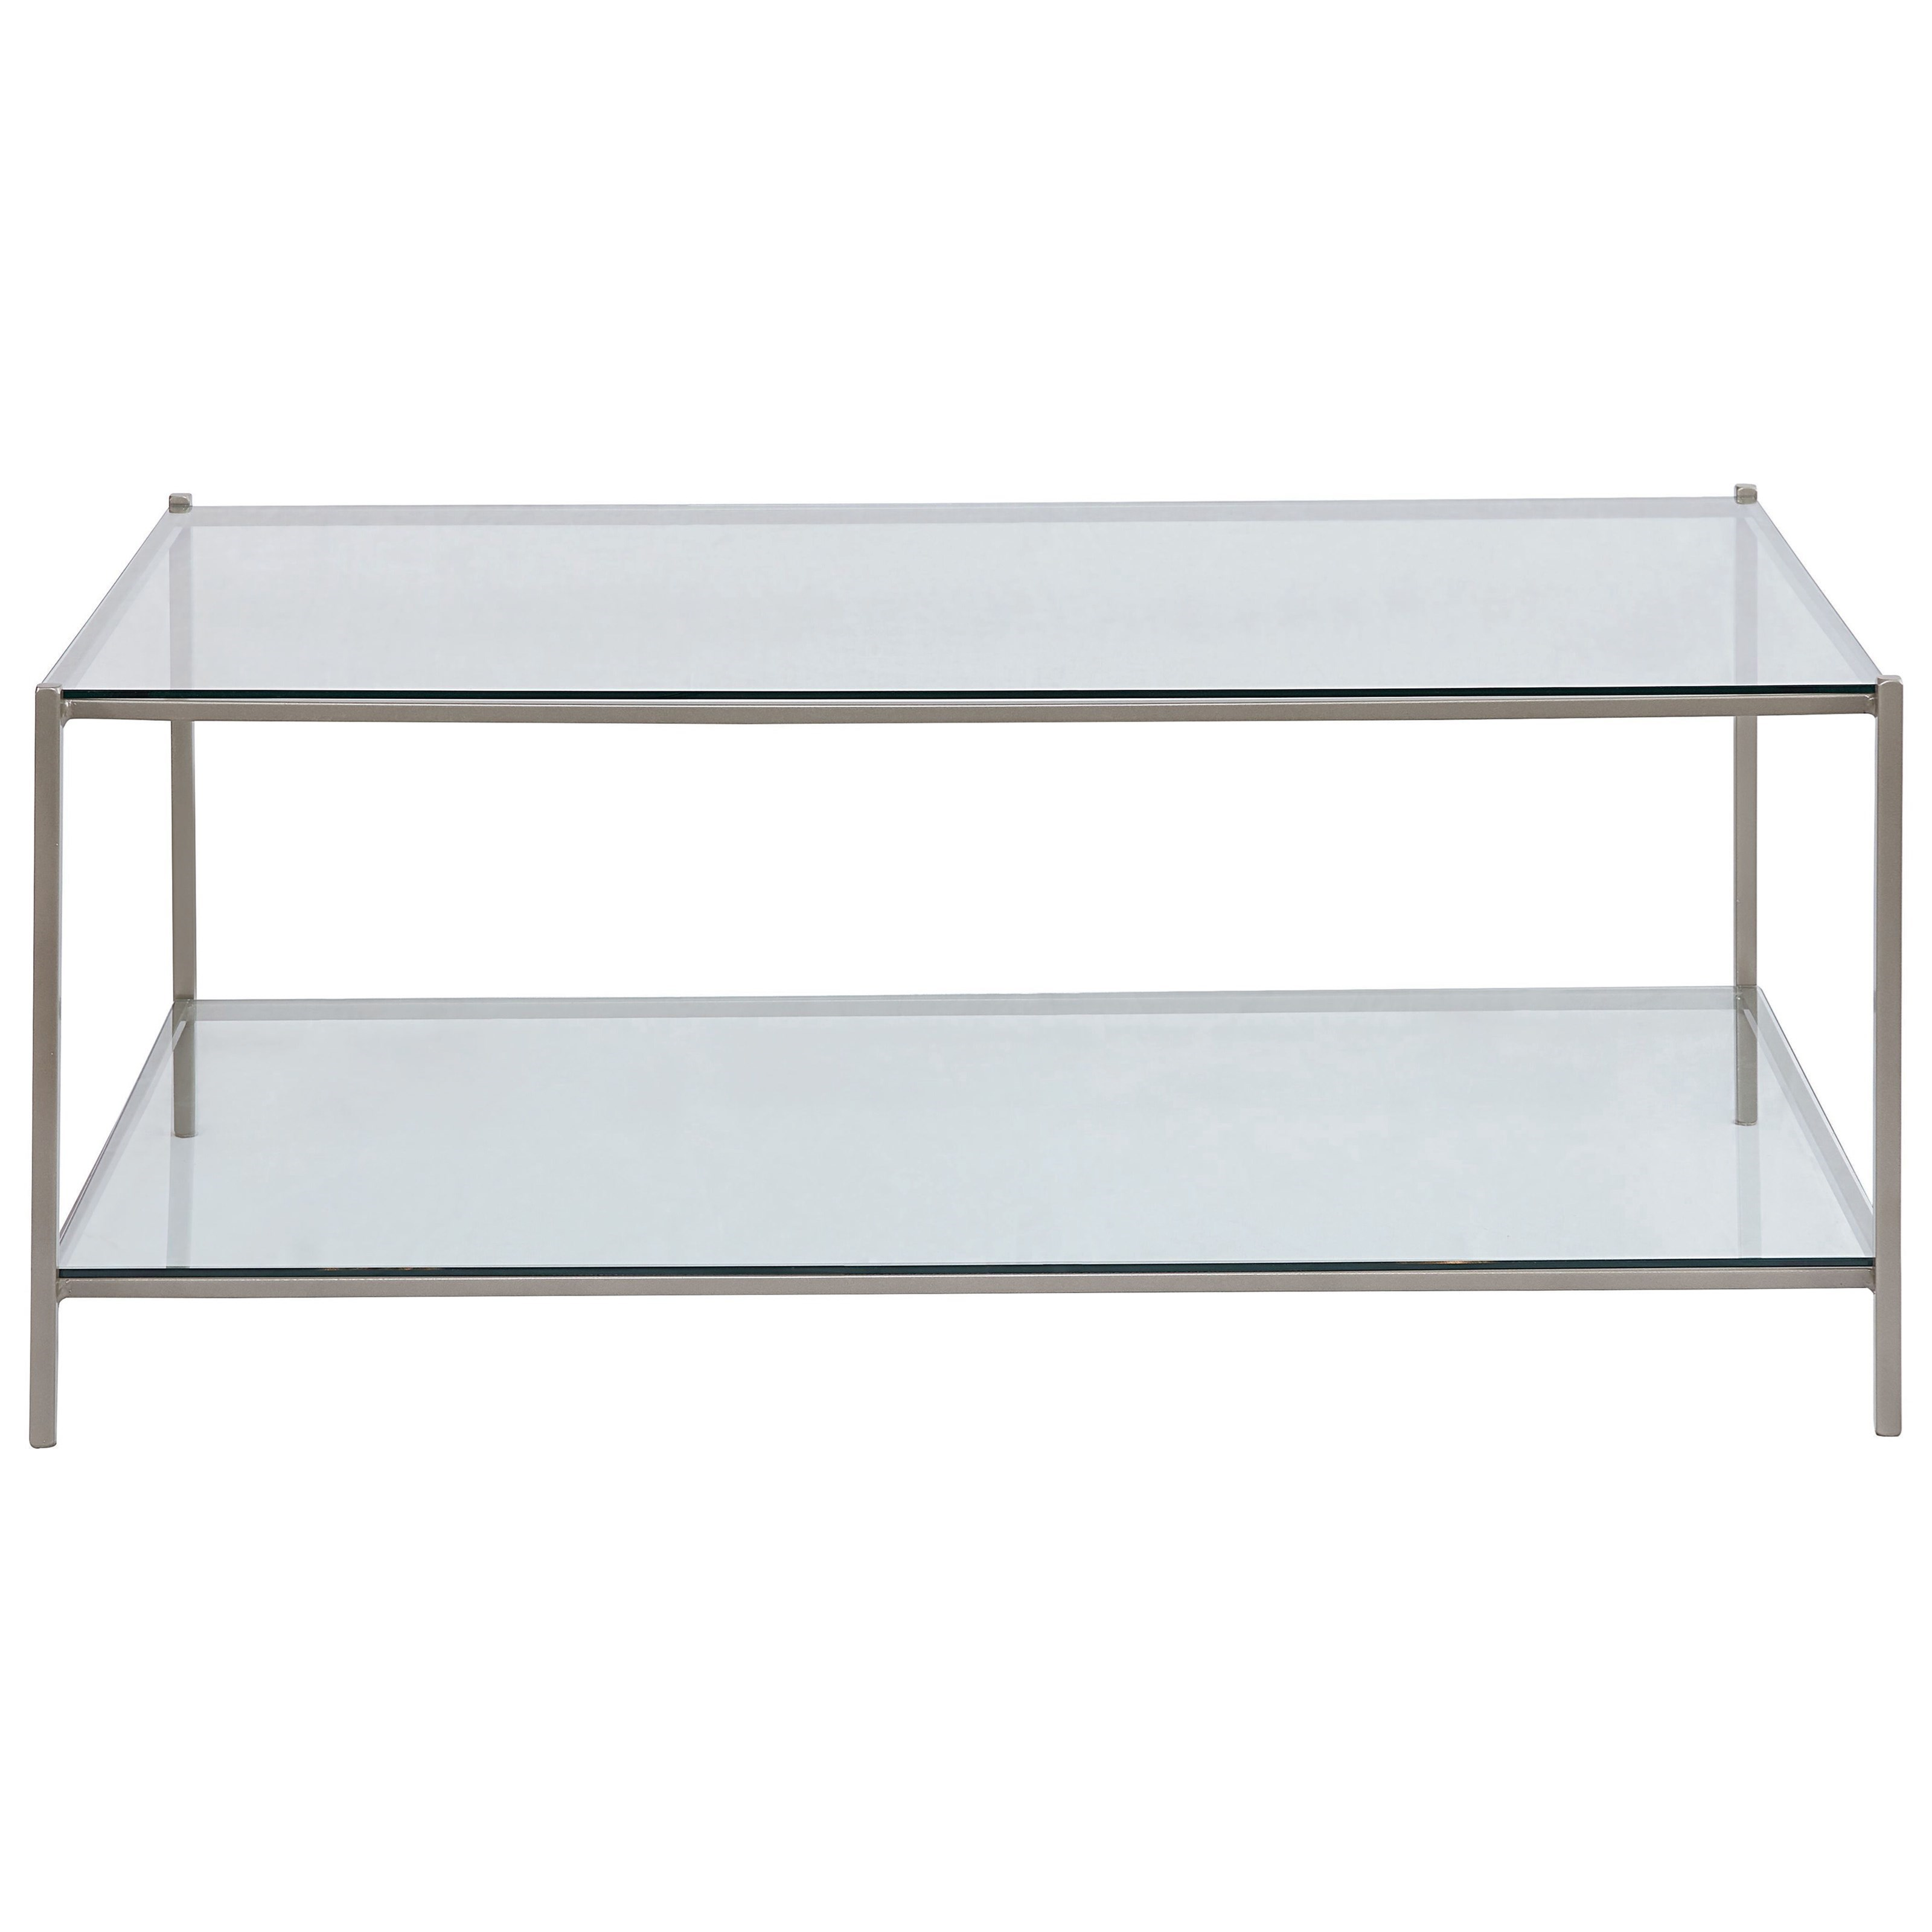 Linville Cocktail Table by Bassett at Bassett of Cool Springs